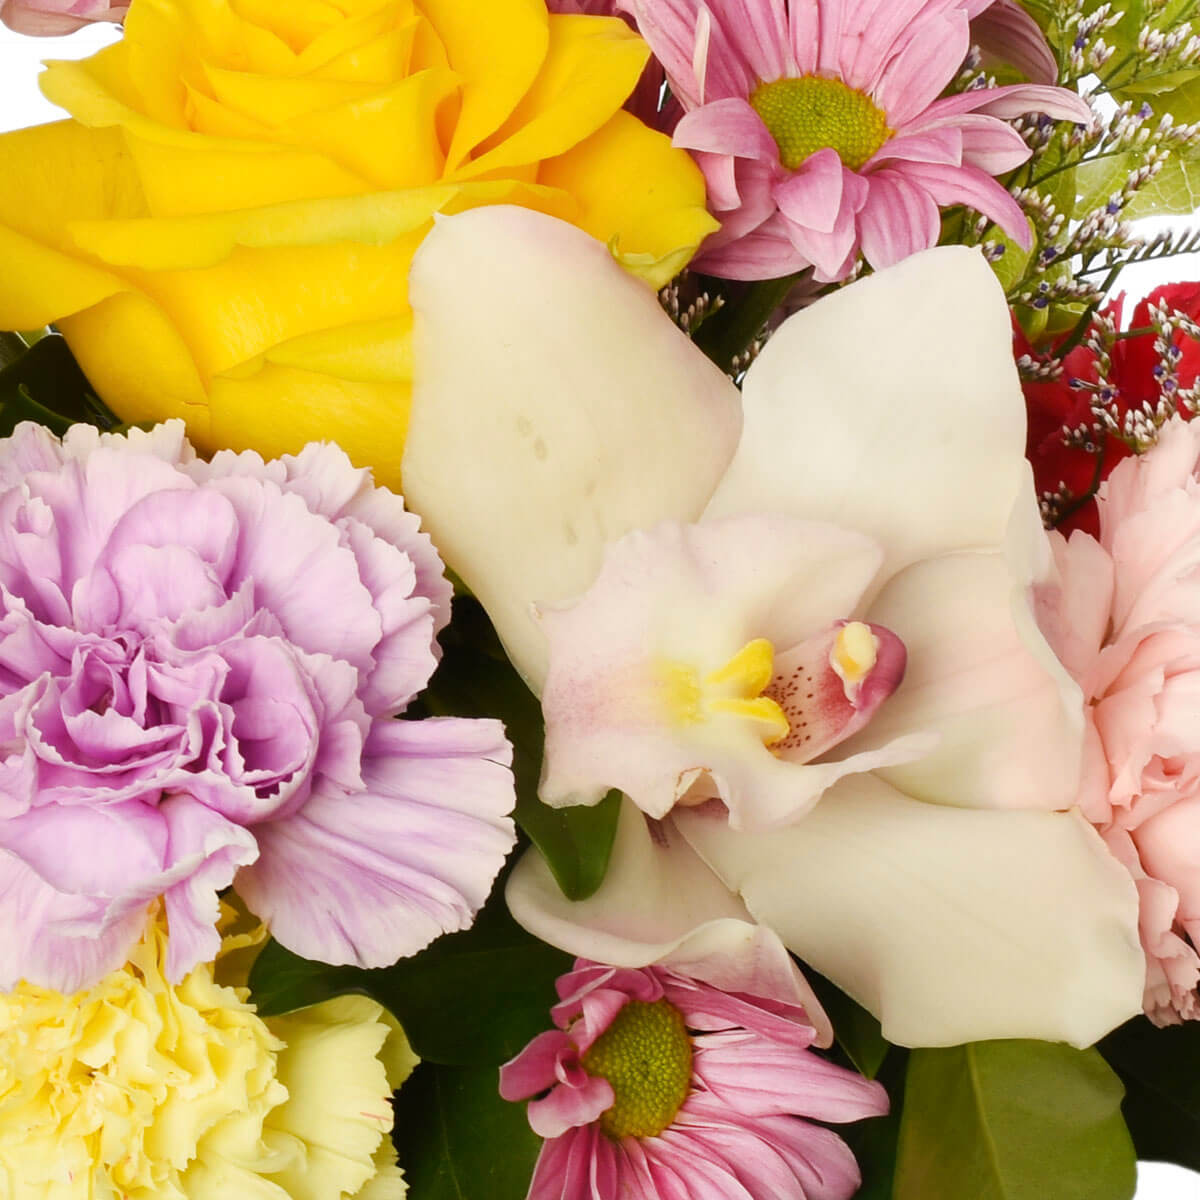 Flowers for mom in pink blooms for Vancouver and Burnaby delivery Adele Rae Florist.